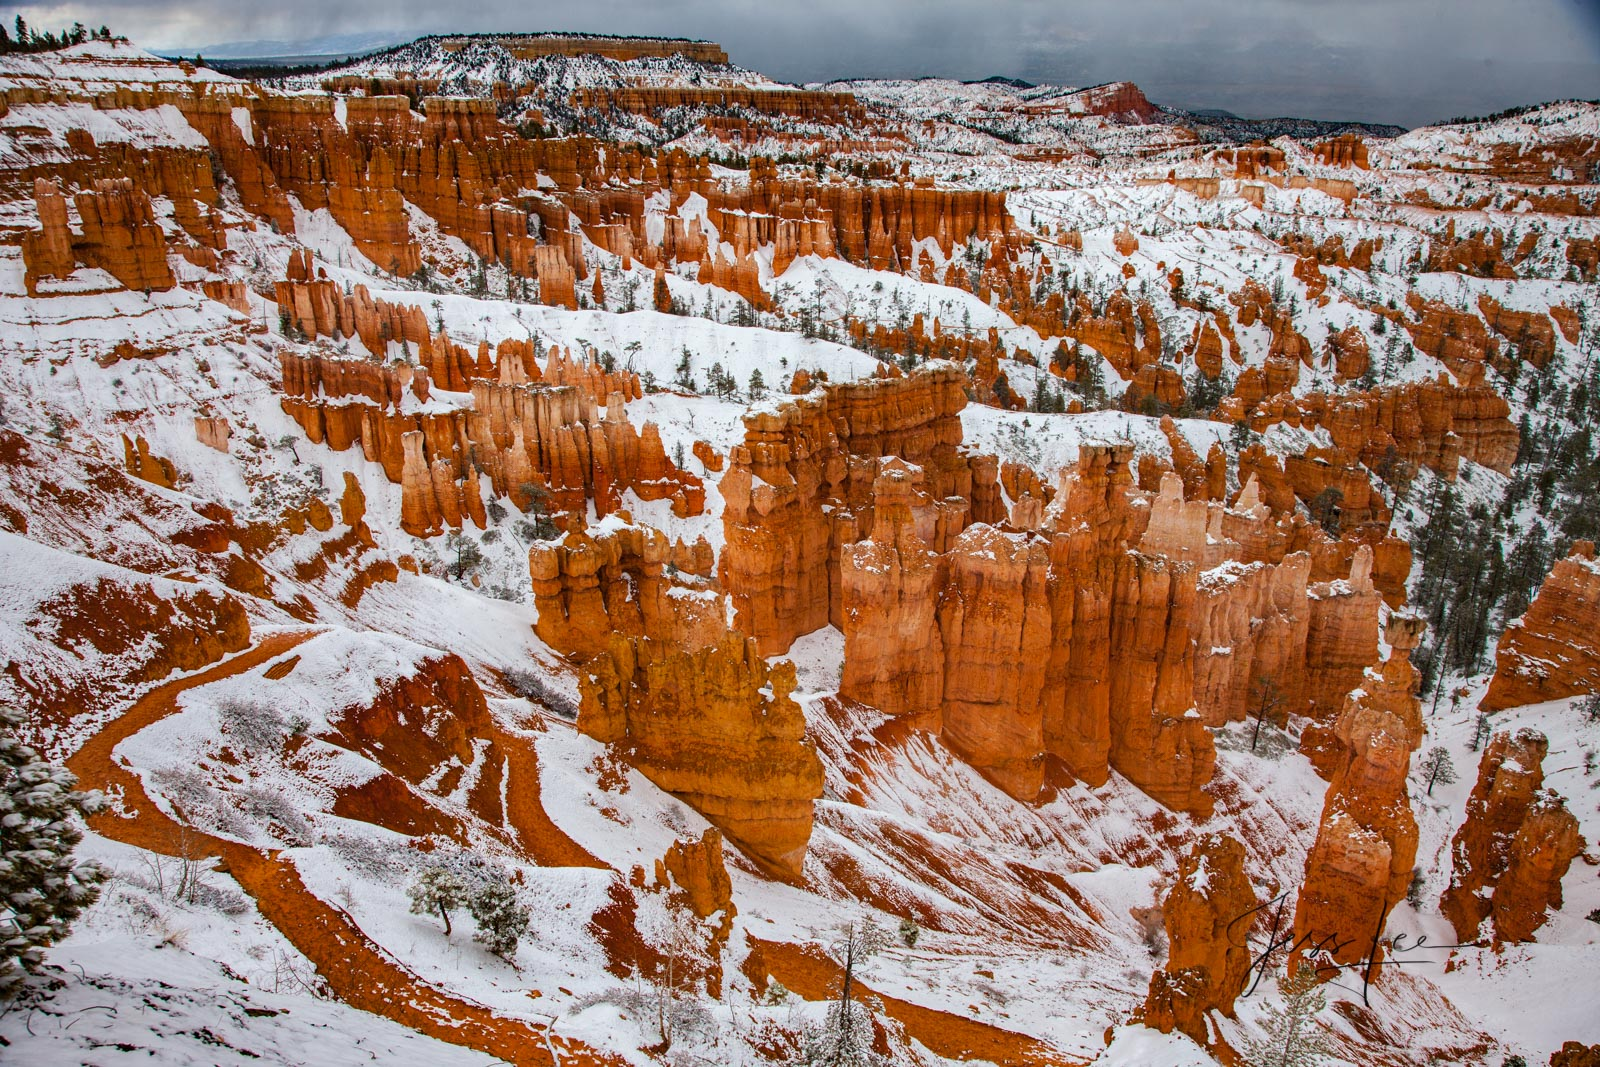 A trail winding through snow-covered Bryce Canyon National Park.